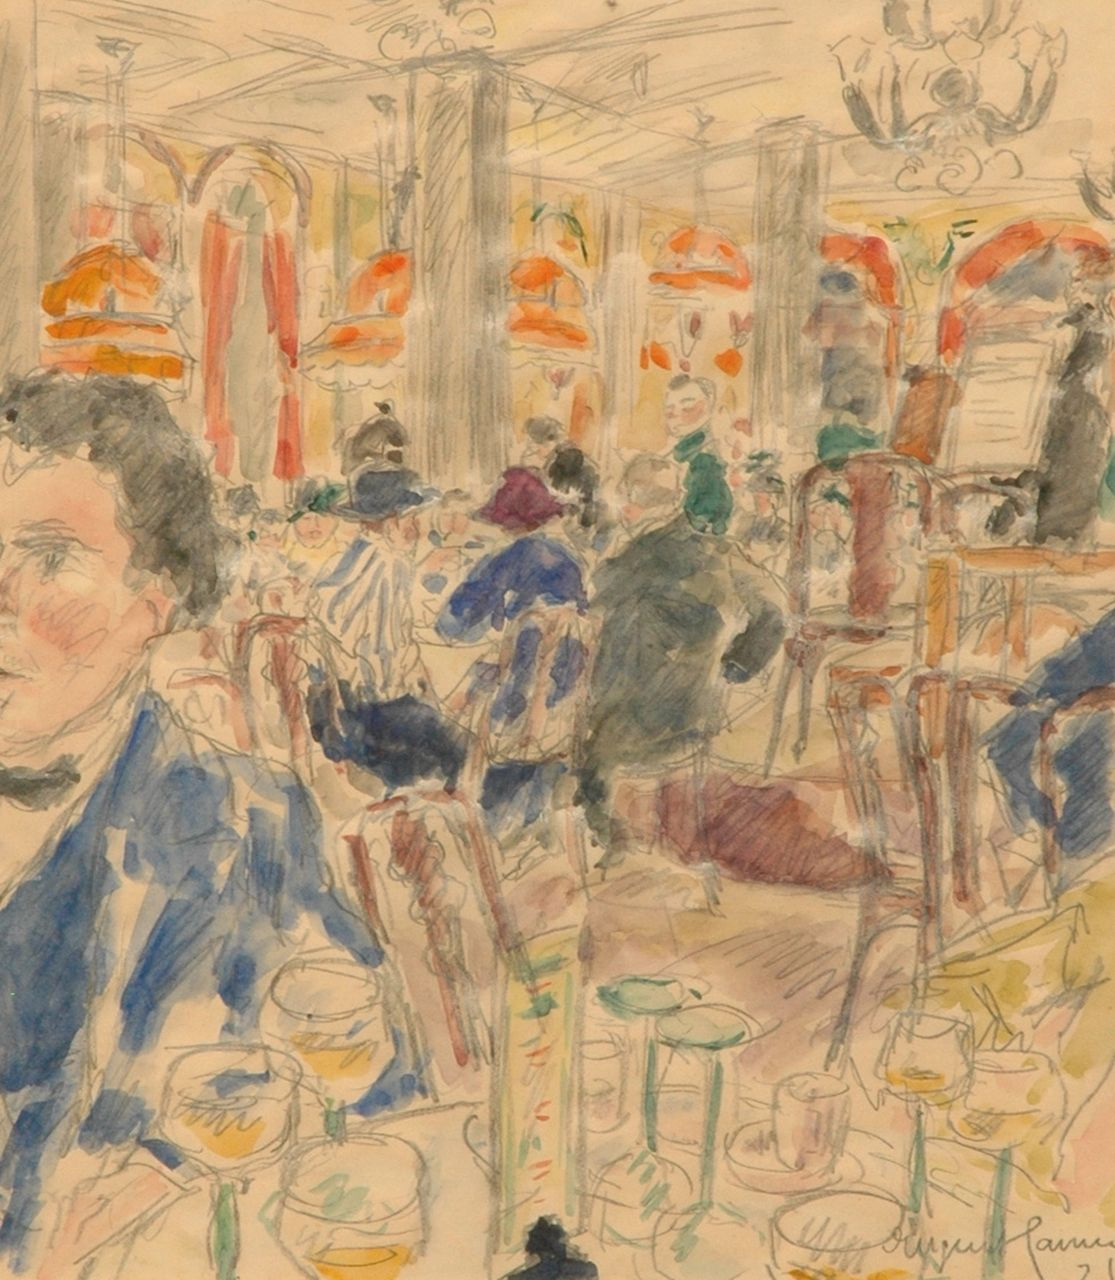 Eugen Hamm | At the coffee house 'Drei Könige' in Leipzig, pencil and watercolour on paper, 33.3 x 29.3 cm, signed l.r. and dated '21